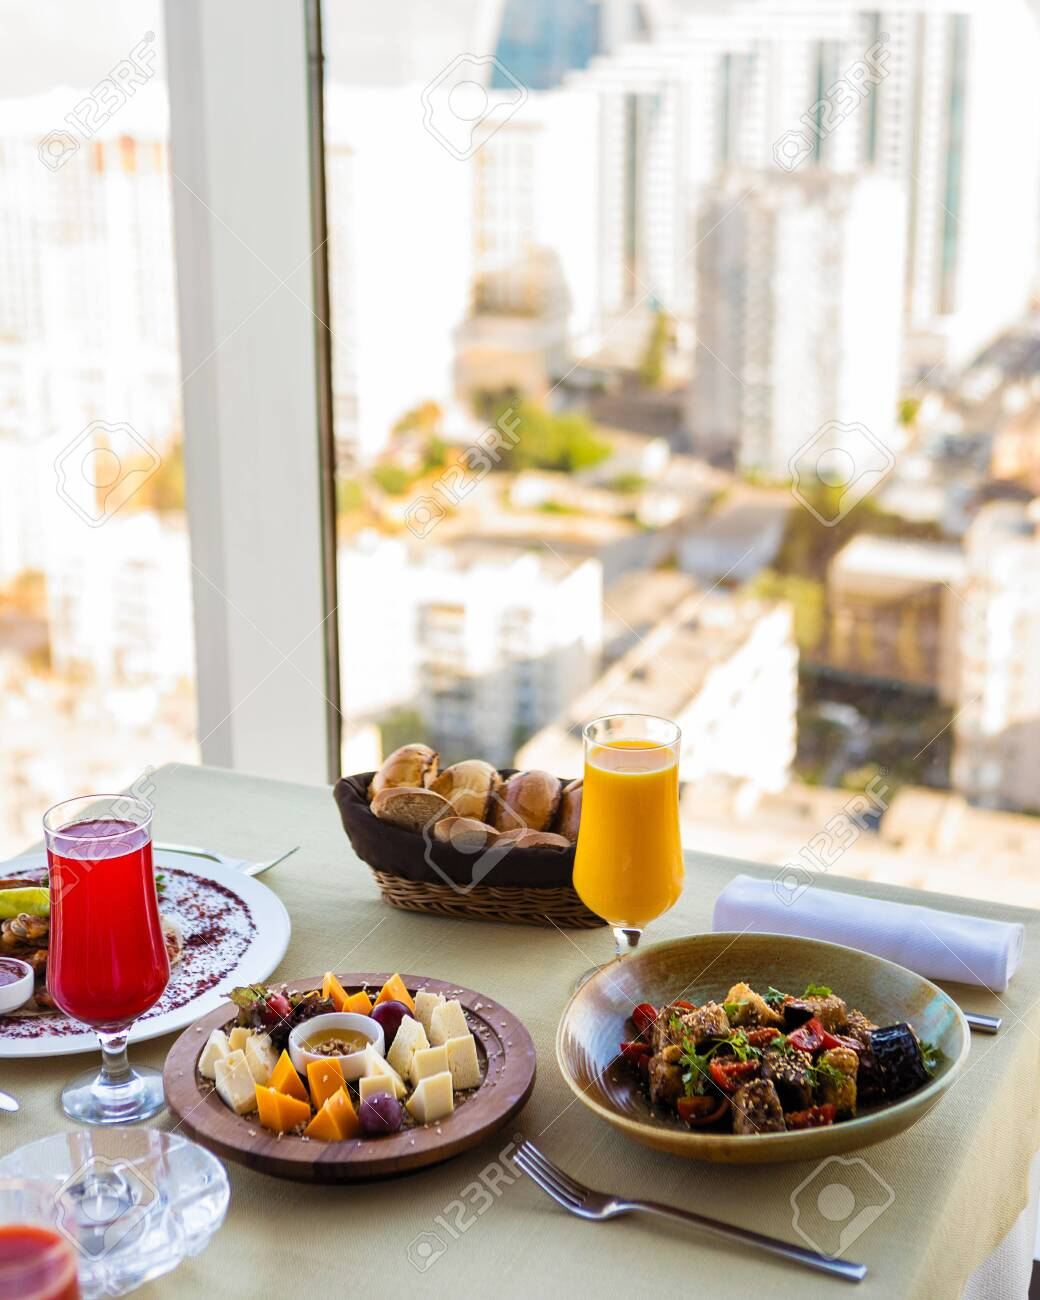 Tasty meals, cheese mix, fruit juice on the restaurant table - 150763083